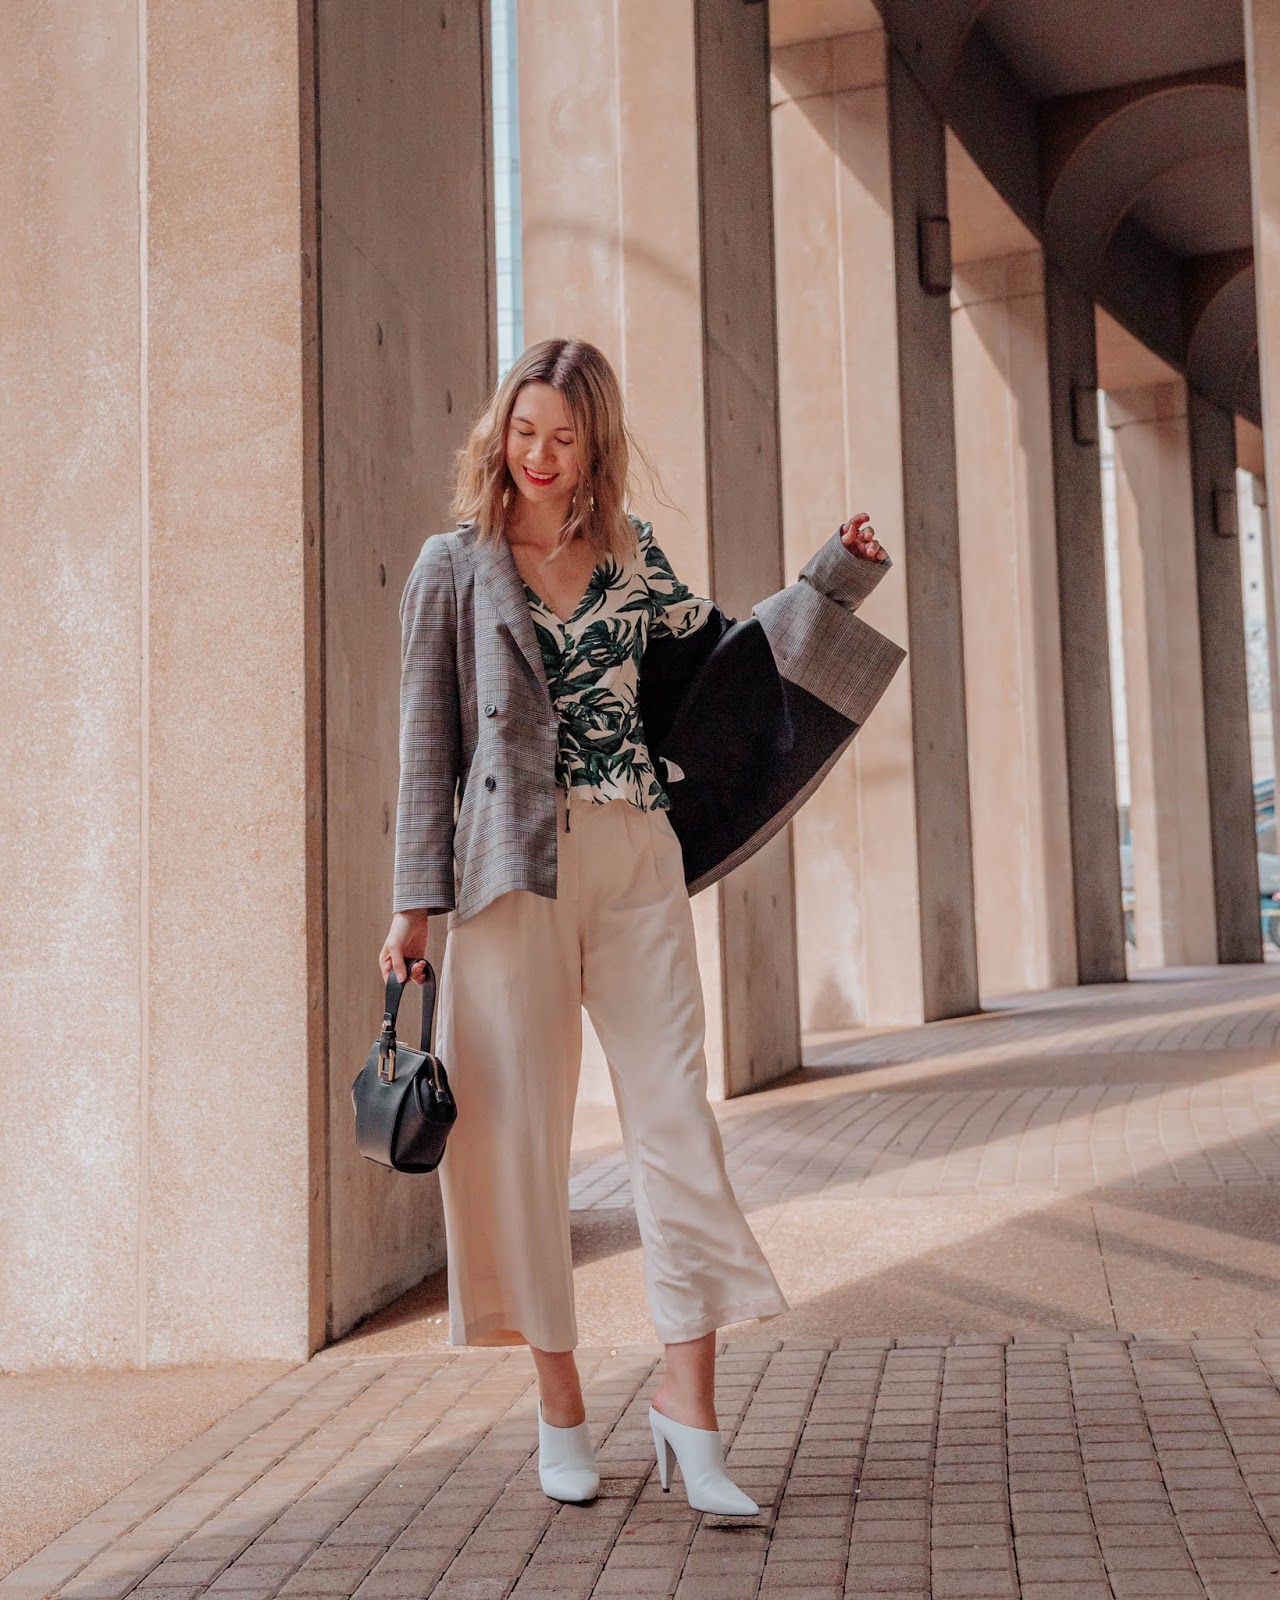 Camel tones, vancouver blogger, fall trends, fall 2018 trends, camel coat, cozy outfit for winter, fall outfit, fall style, canadian style, canadian fashion blogger, culottes, white mules, tropical print shirt, mango, chriselle lim collection, plaid blazer